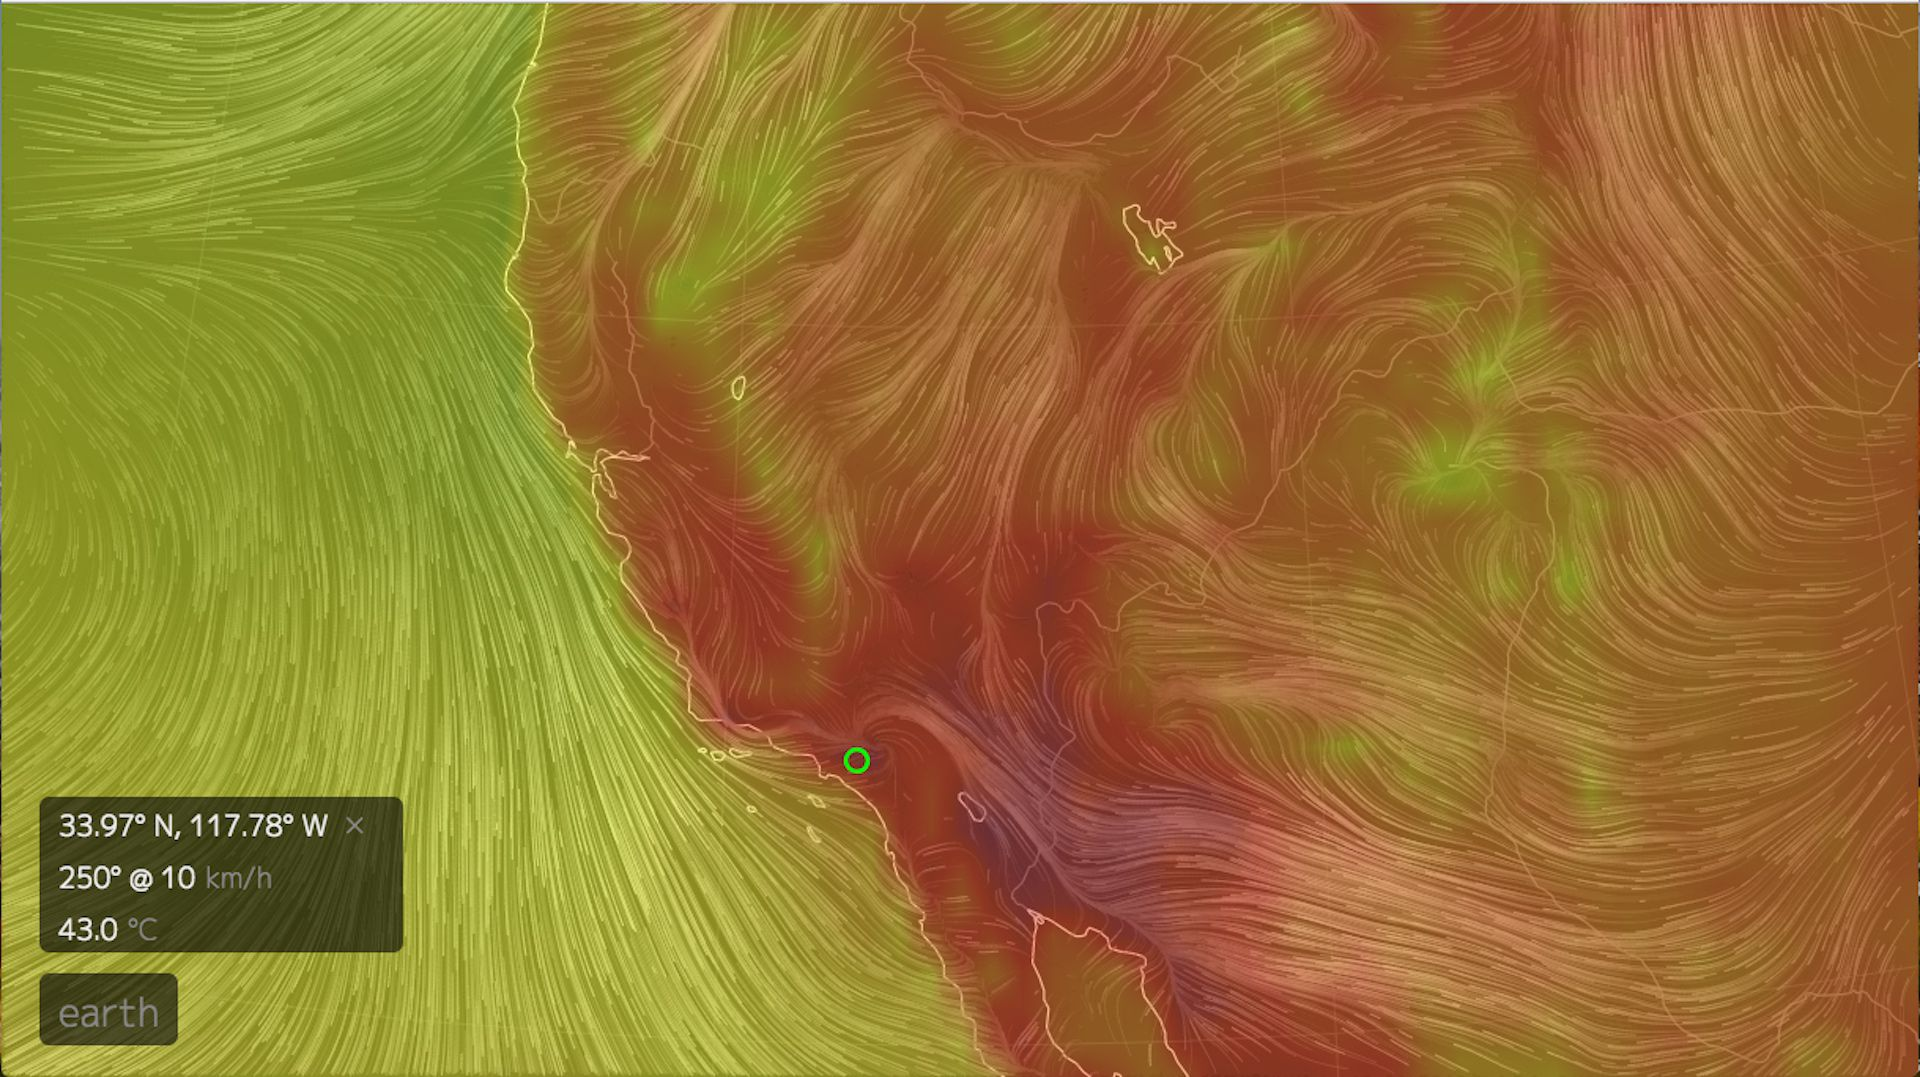 Computer model simulation showing California's heat wave in full swing on July 6, 2018.